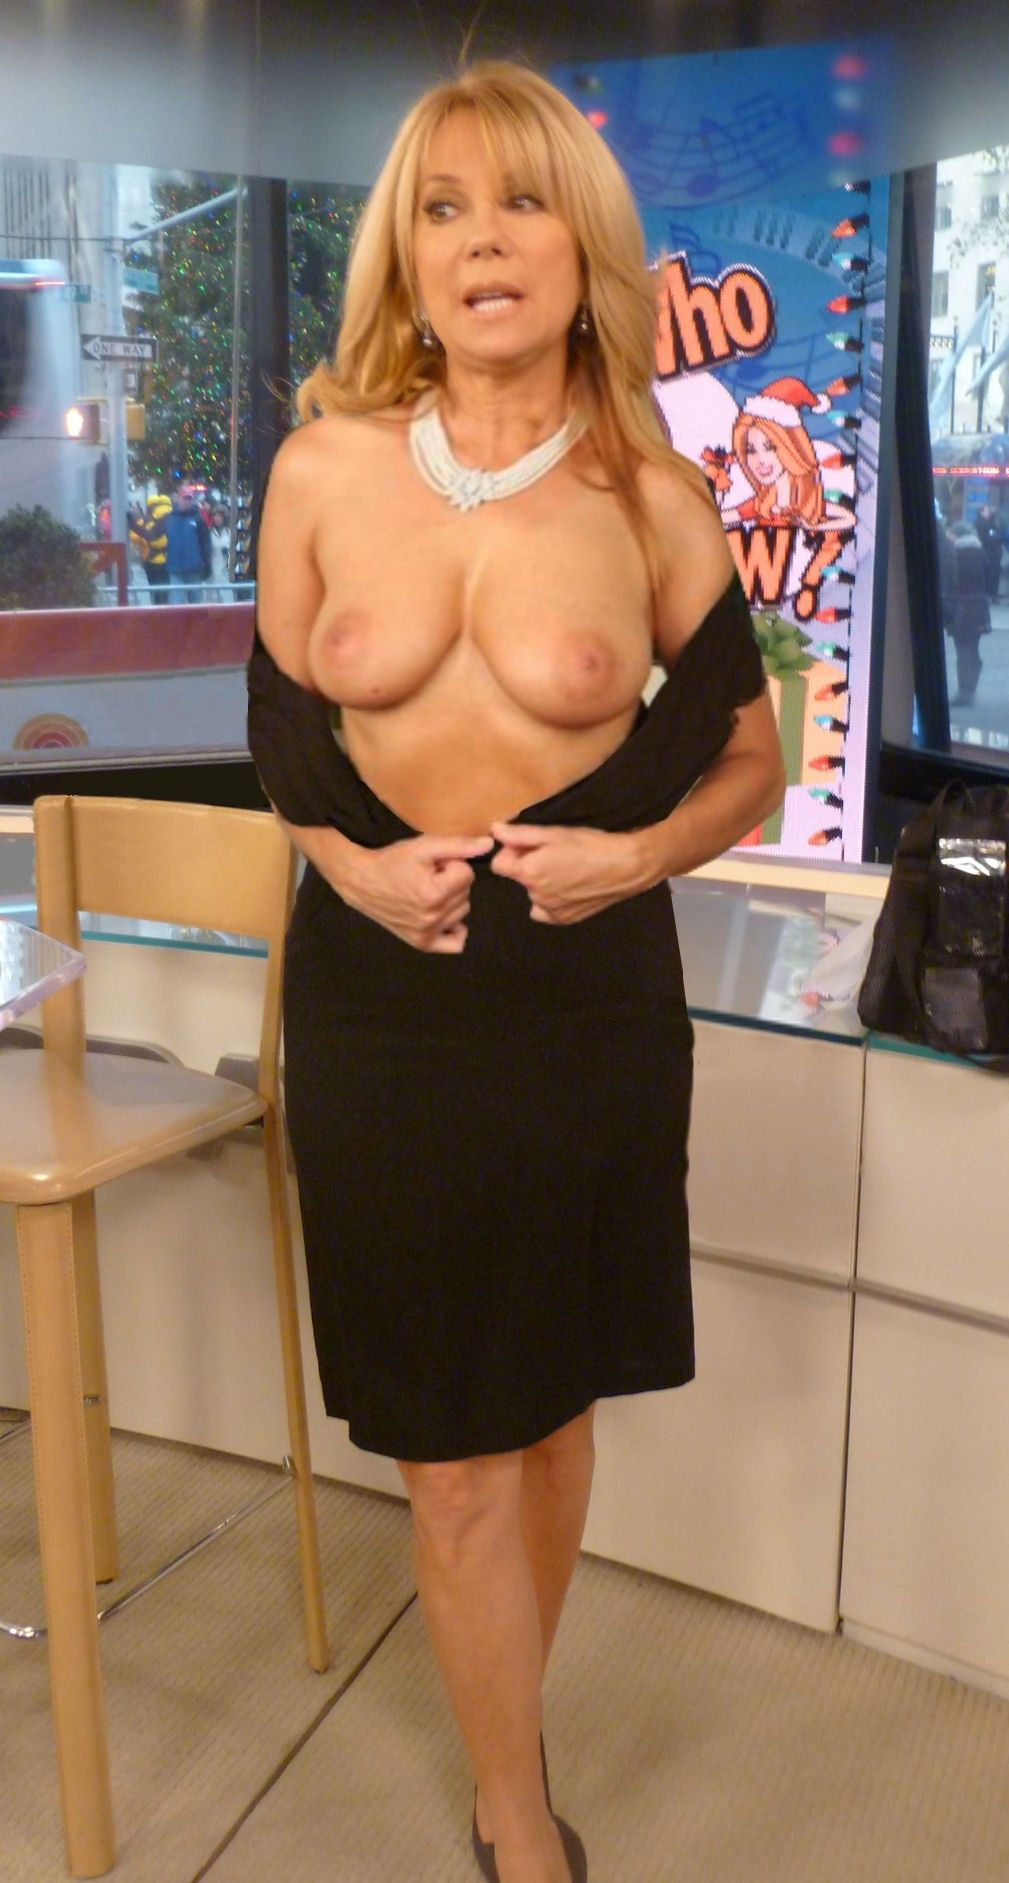 Kathy Lee Gifford Naked